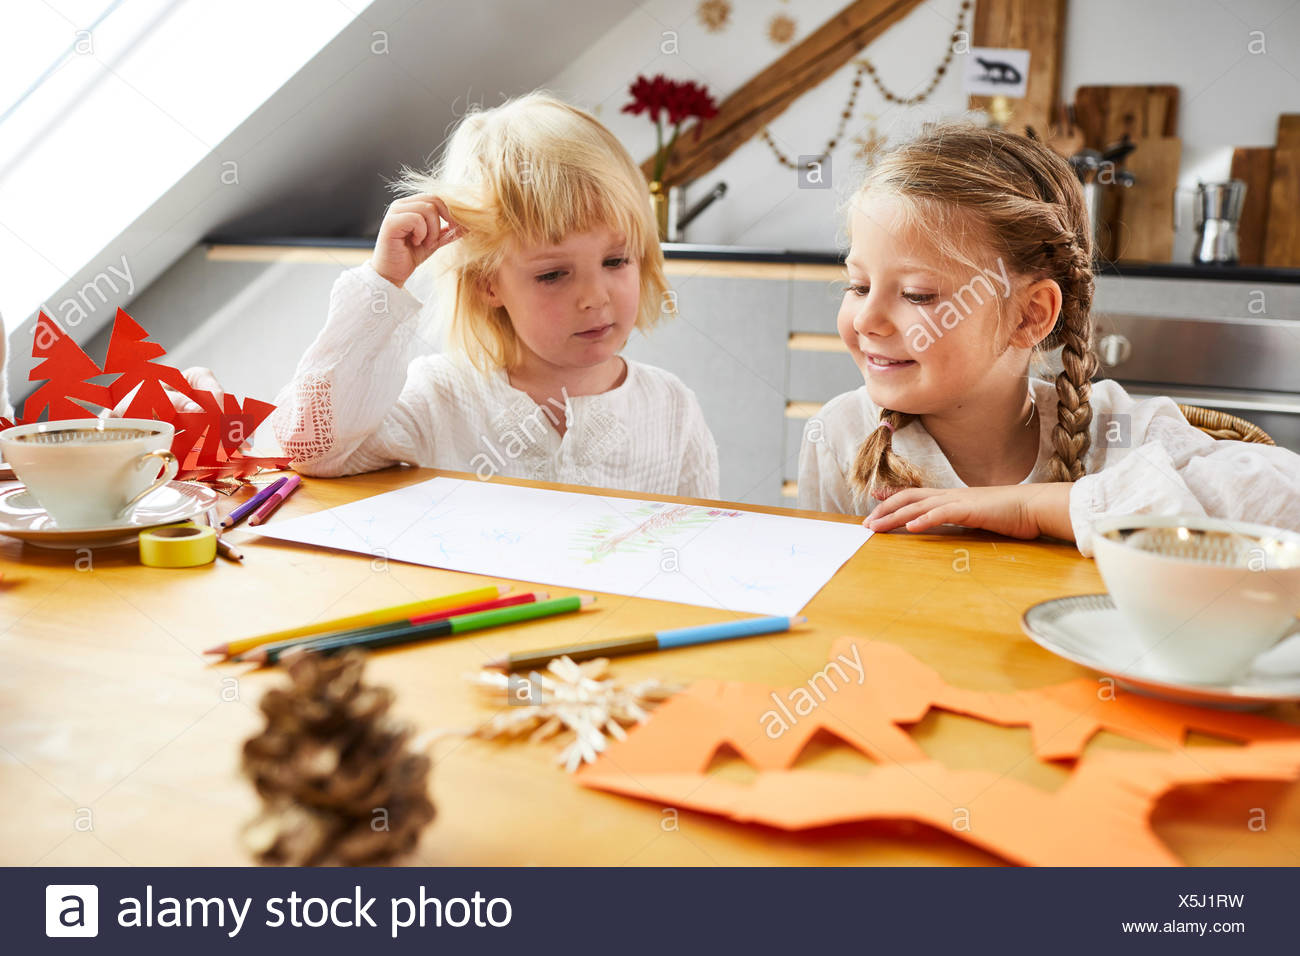 Two girls cozy at home while crafting, portrait - Stock Image